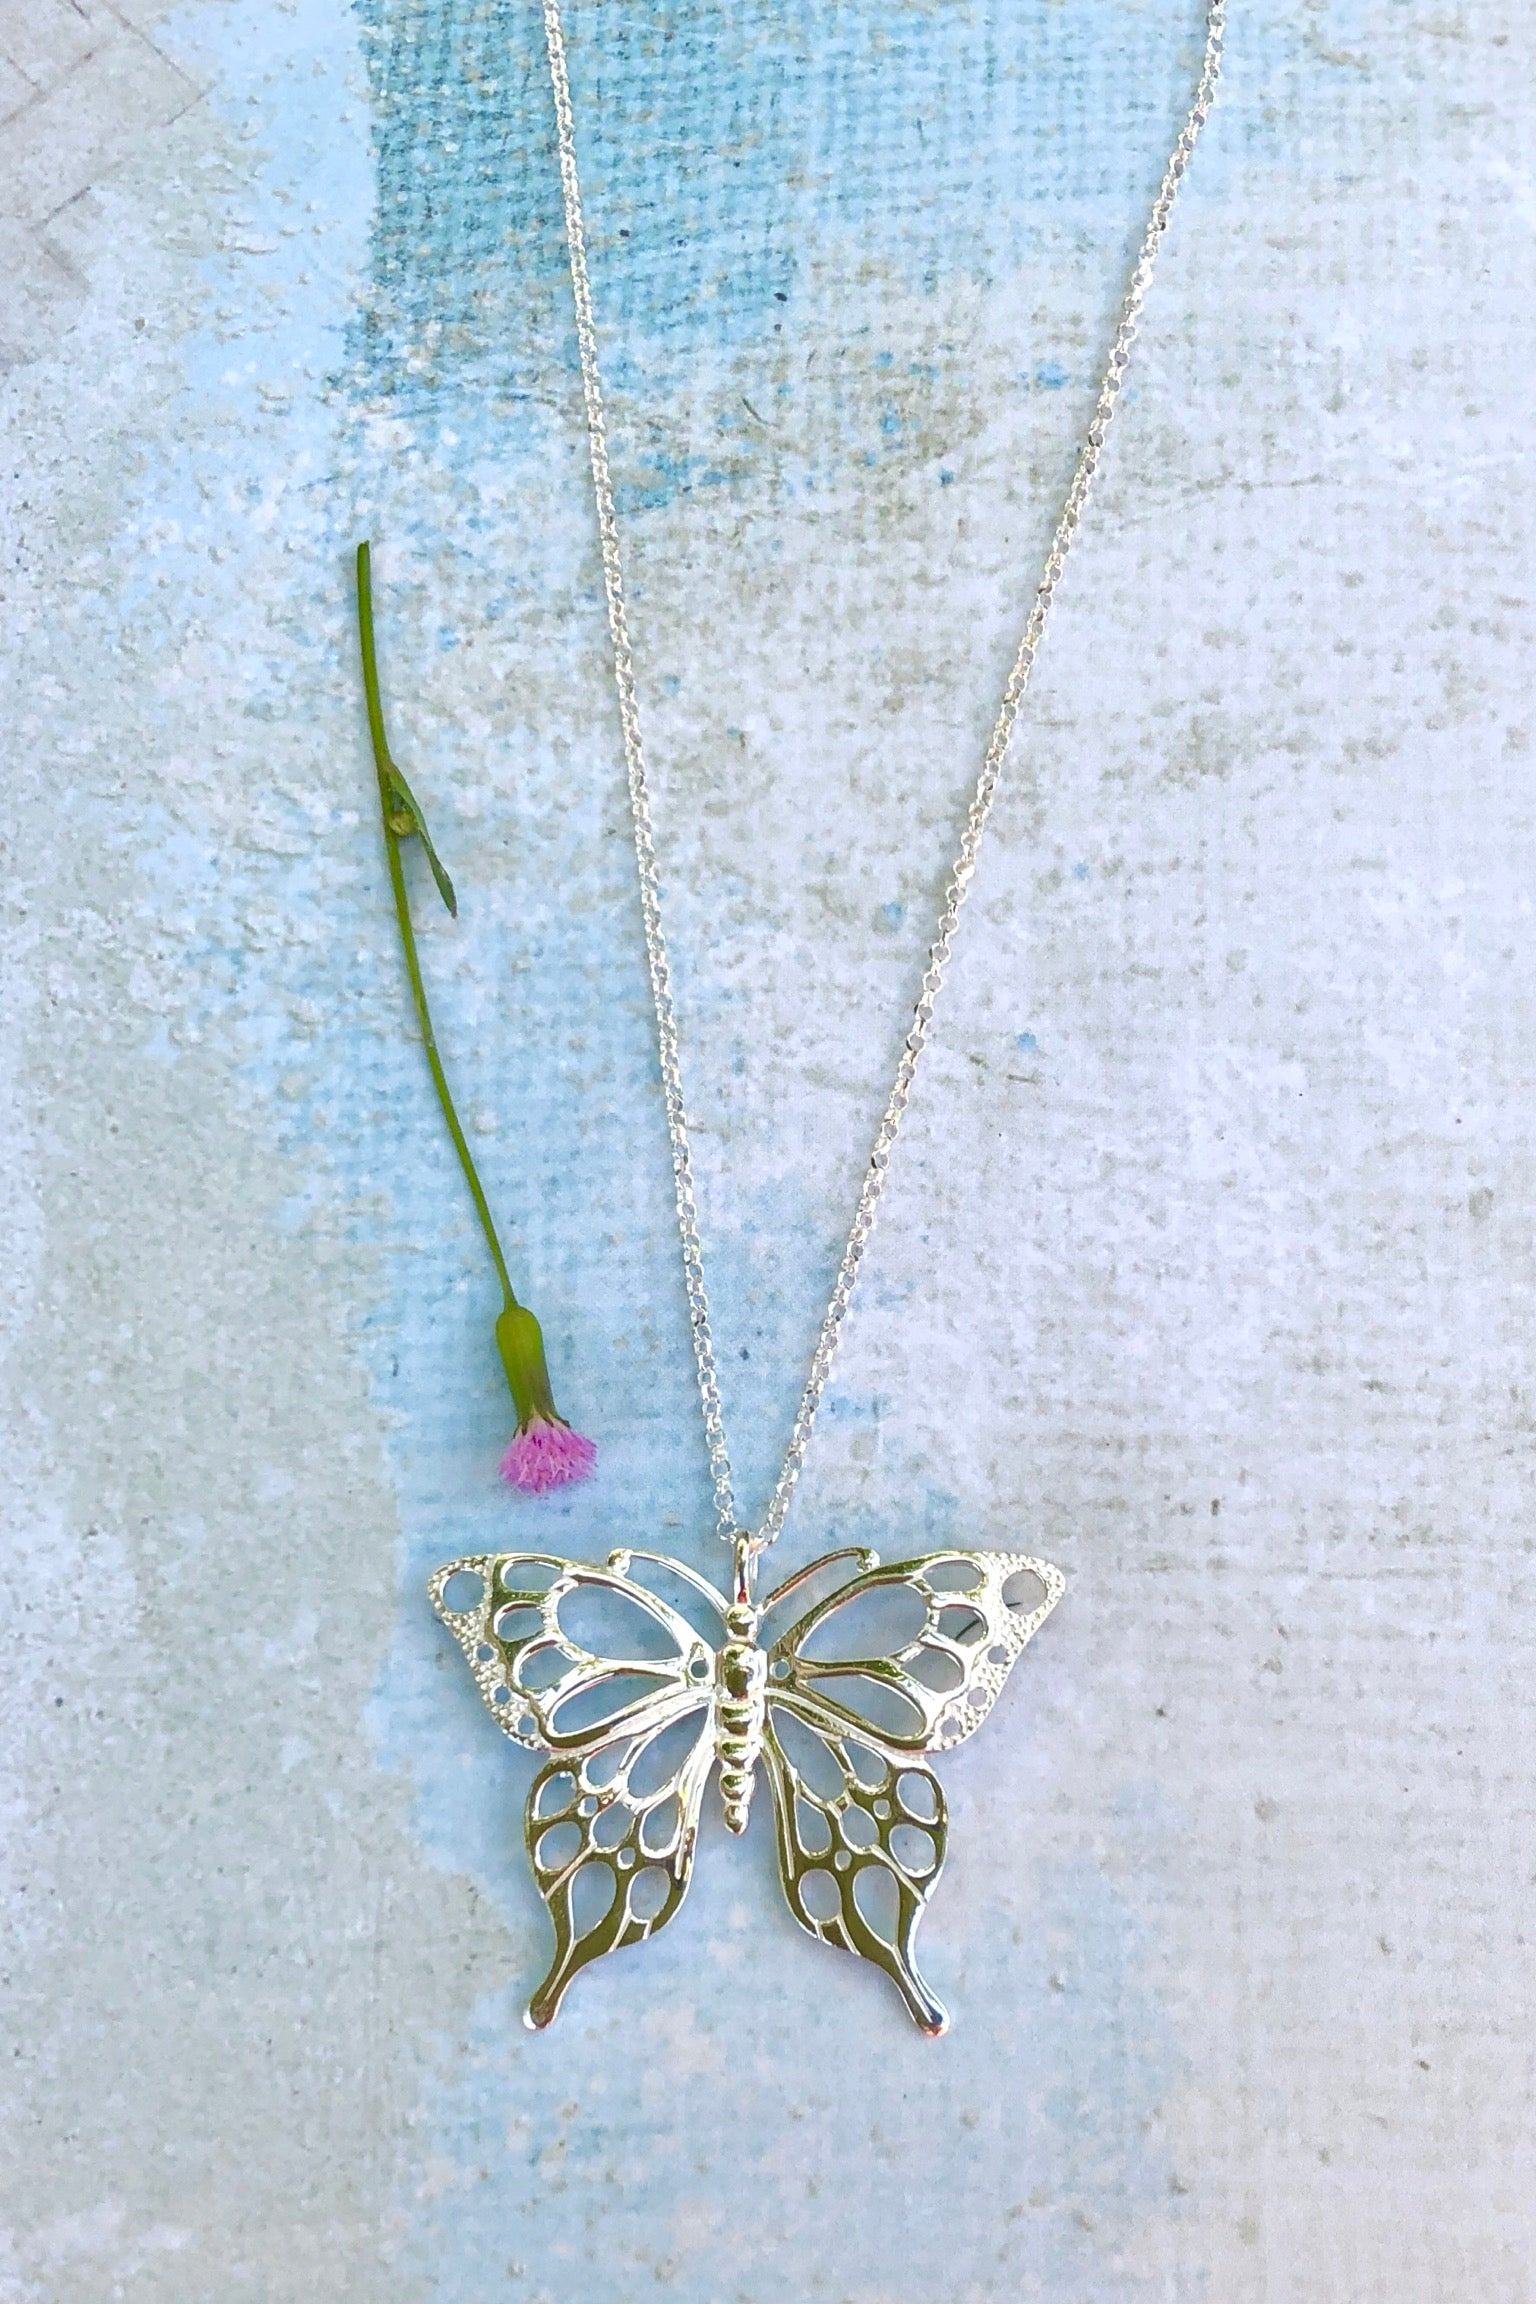 Oracle Pendant Butterfly Silhouette in 925 Silver